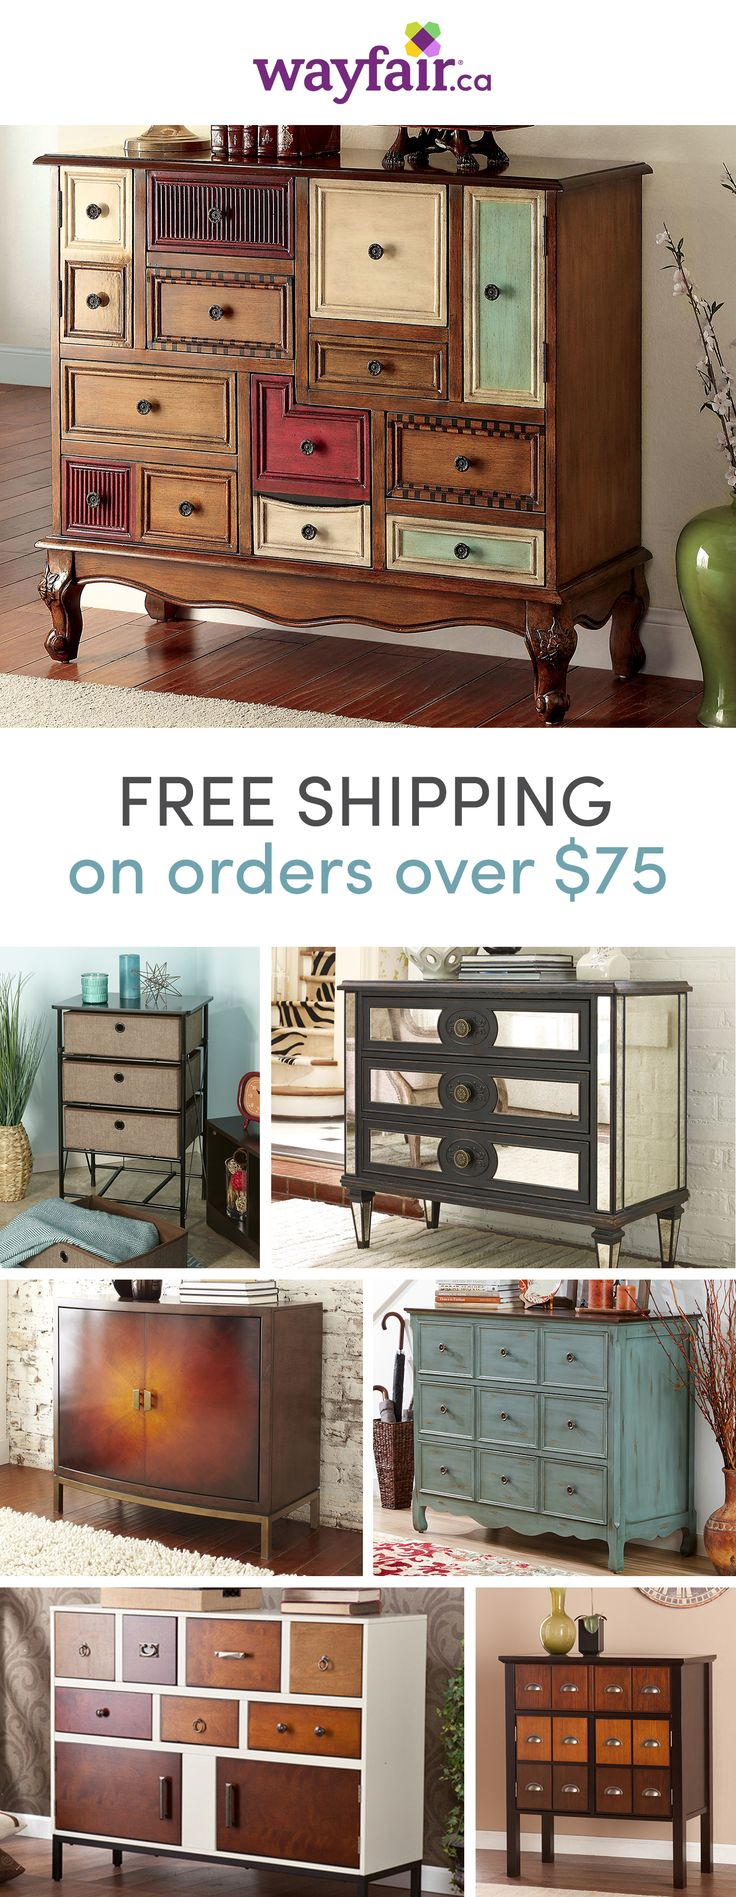 Storage, meet style. The perfect piece of home décor, accent chests are the perfect addition to your home, especially if you're working with small space. Show off your personal decorating skills while creating extra room to get organized with endless options of accent chests. Shop styles for every space at up to 70% OFF every day, and enjoy FREE shipping over $75 (even the big stuff!). Sign up to see more!